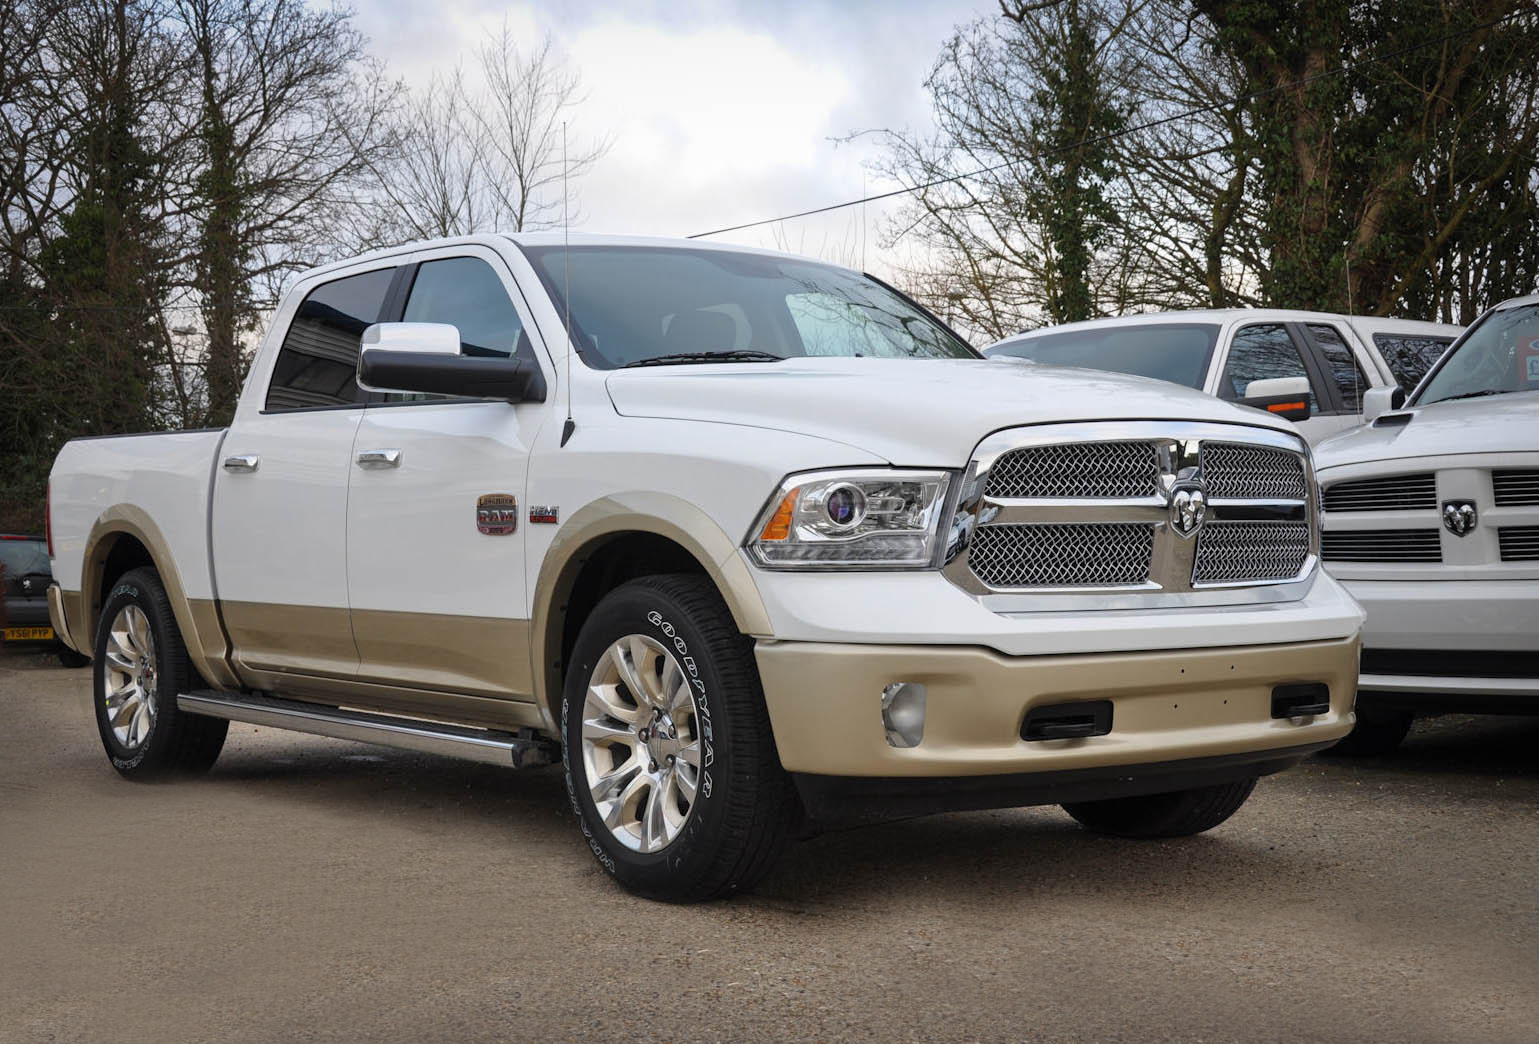 2013 dodge ram laramie longhorn crew cab 4x4 with sat nav. Black Bedroom Furniture Sets. Home Design Ideas